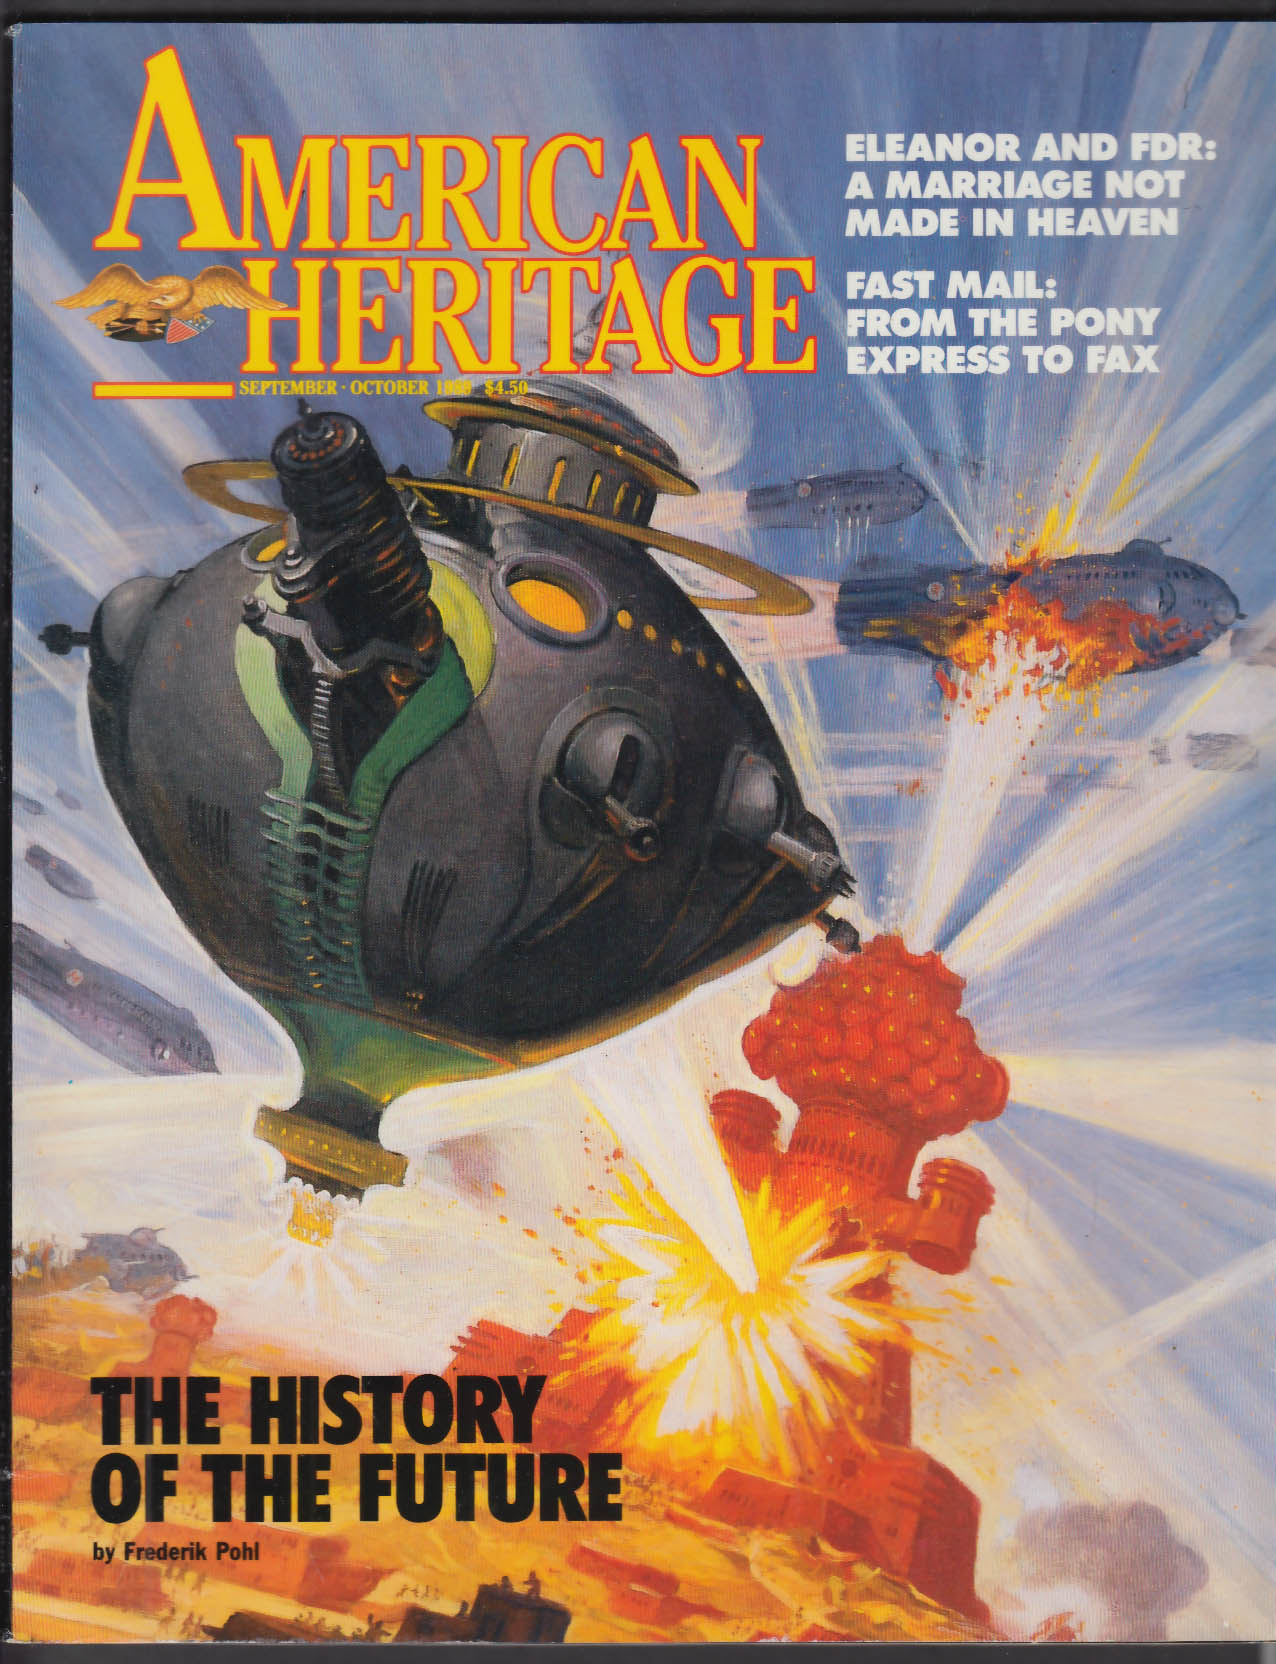 AMERICAN HERITAGE Frederik Pohl Eleanor FDR Juliana Force + 9-10 1989